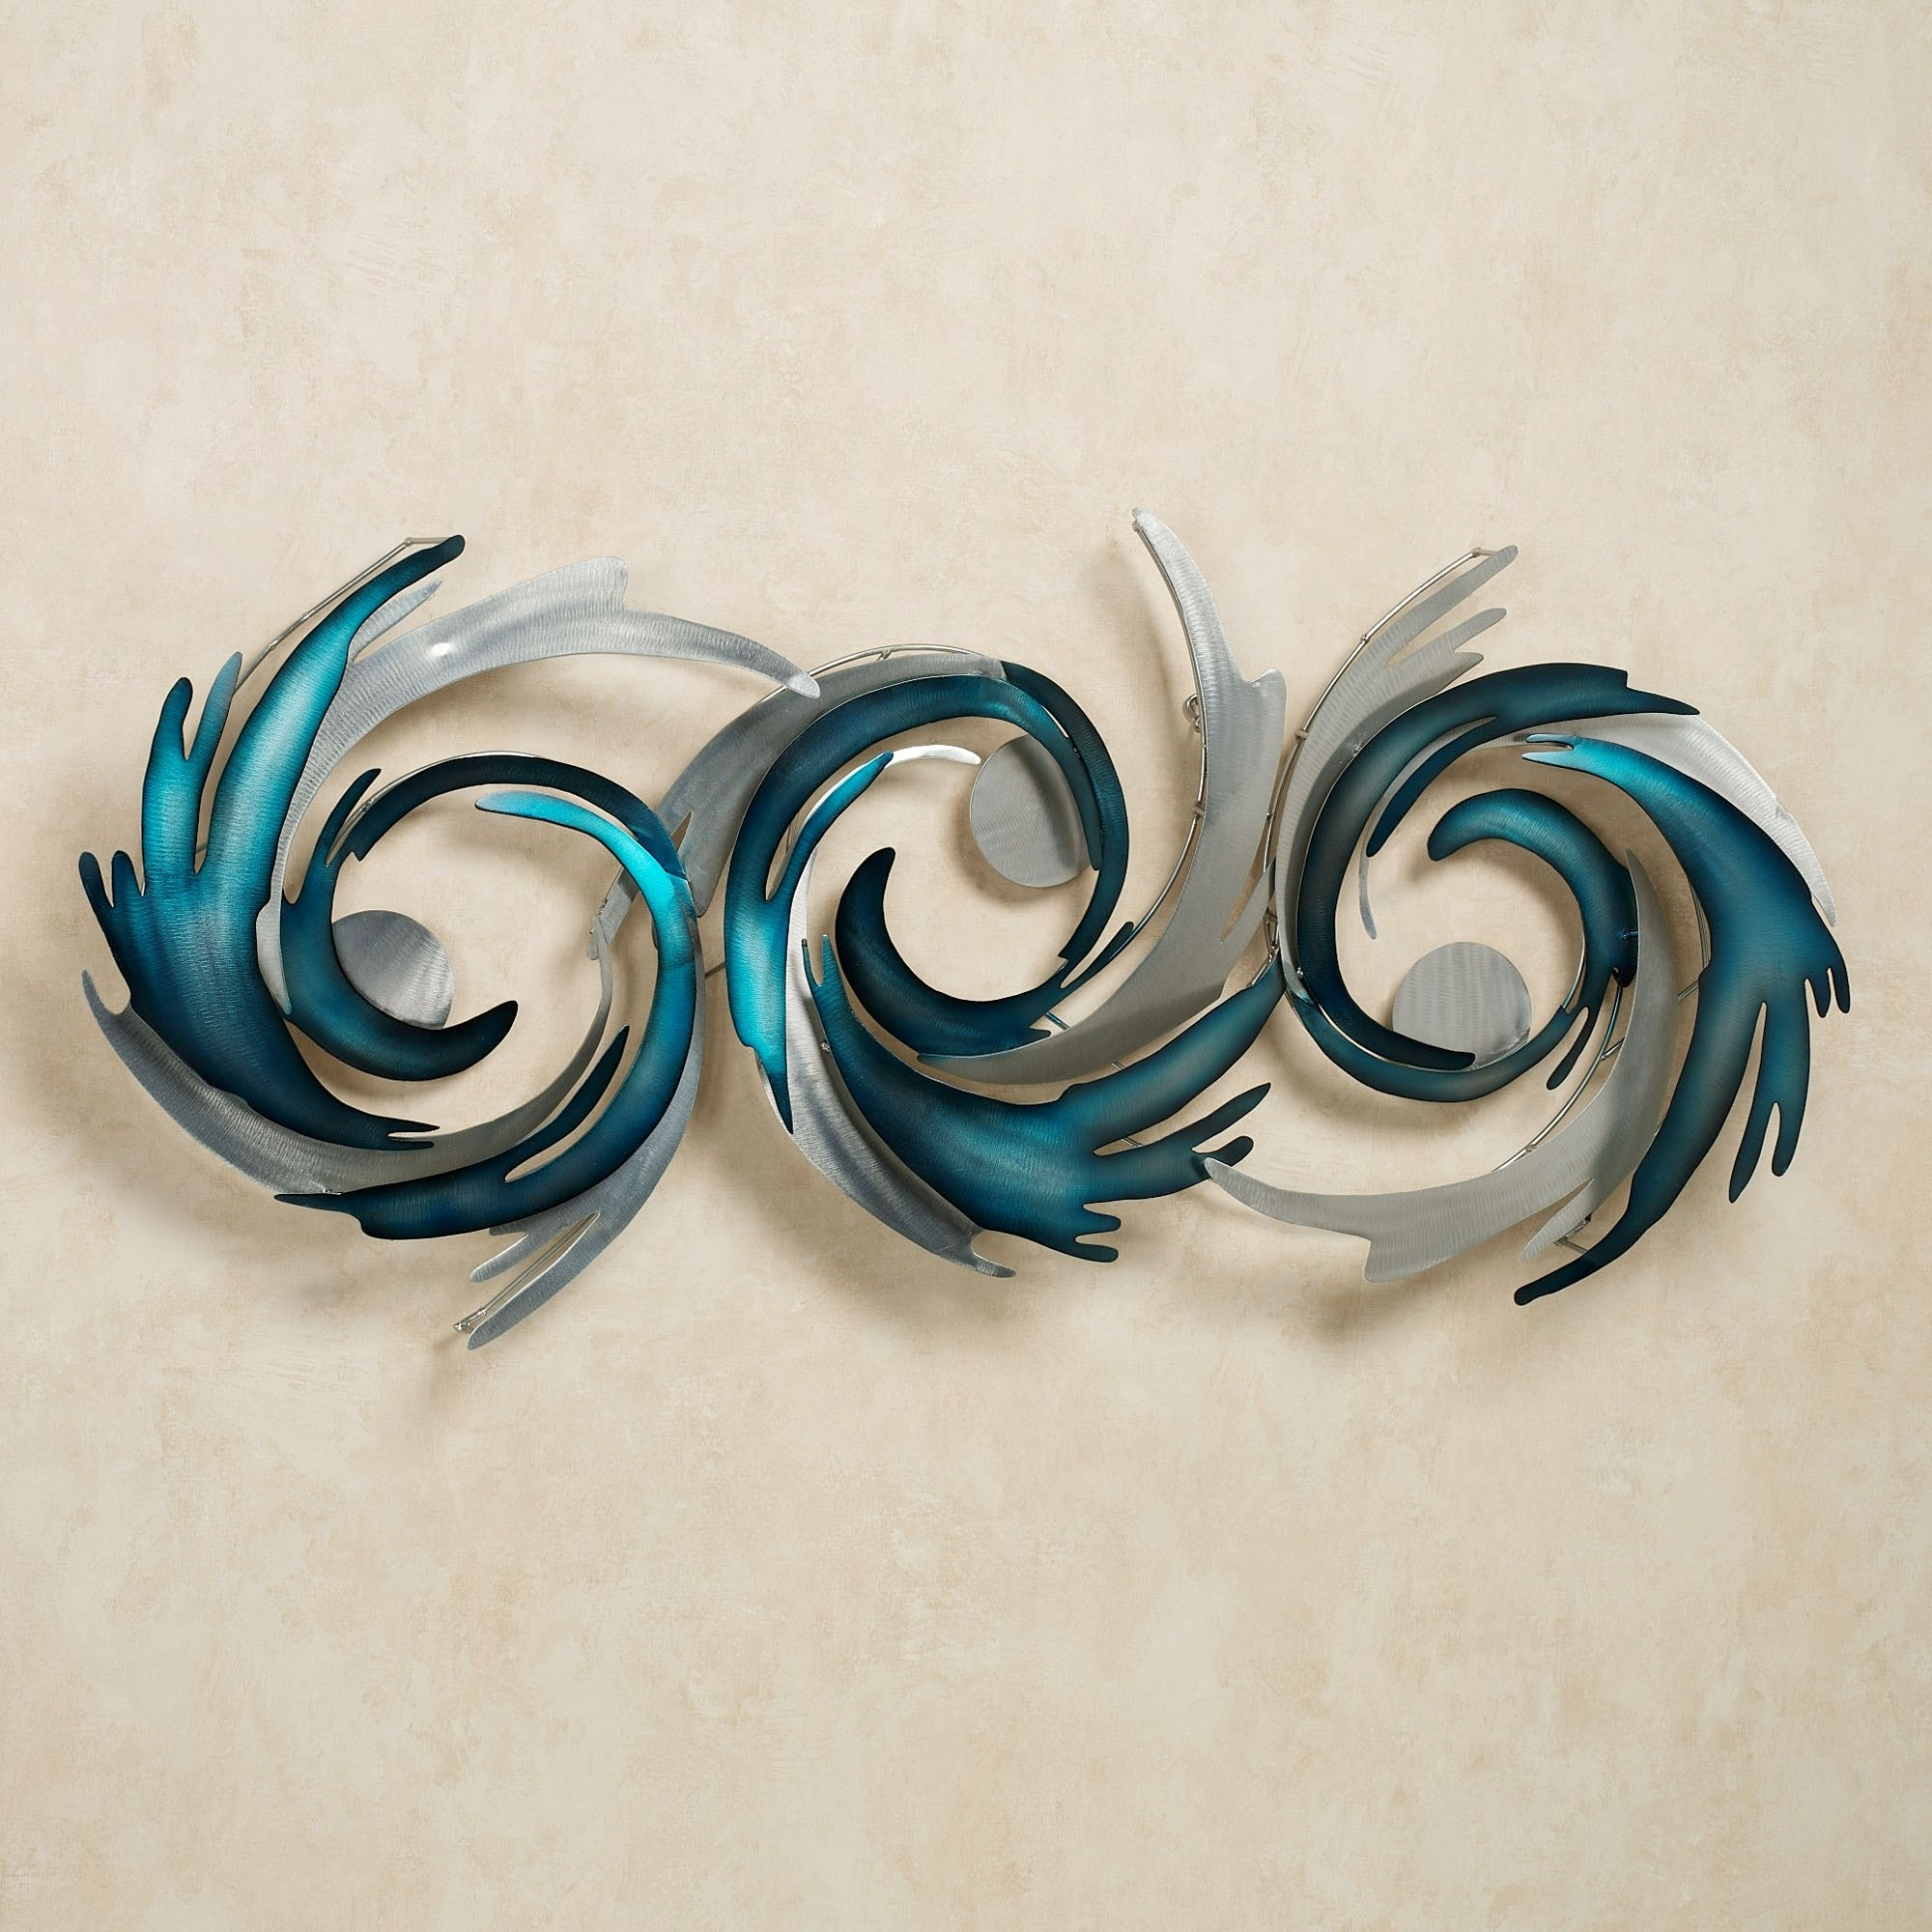 Perfect Storm Metal Wall Sculpturejasonw Studios | Metal Wall intended for 2017 Circle Bubble Wave Shaped Metal Abstract Wall Art